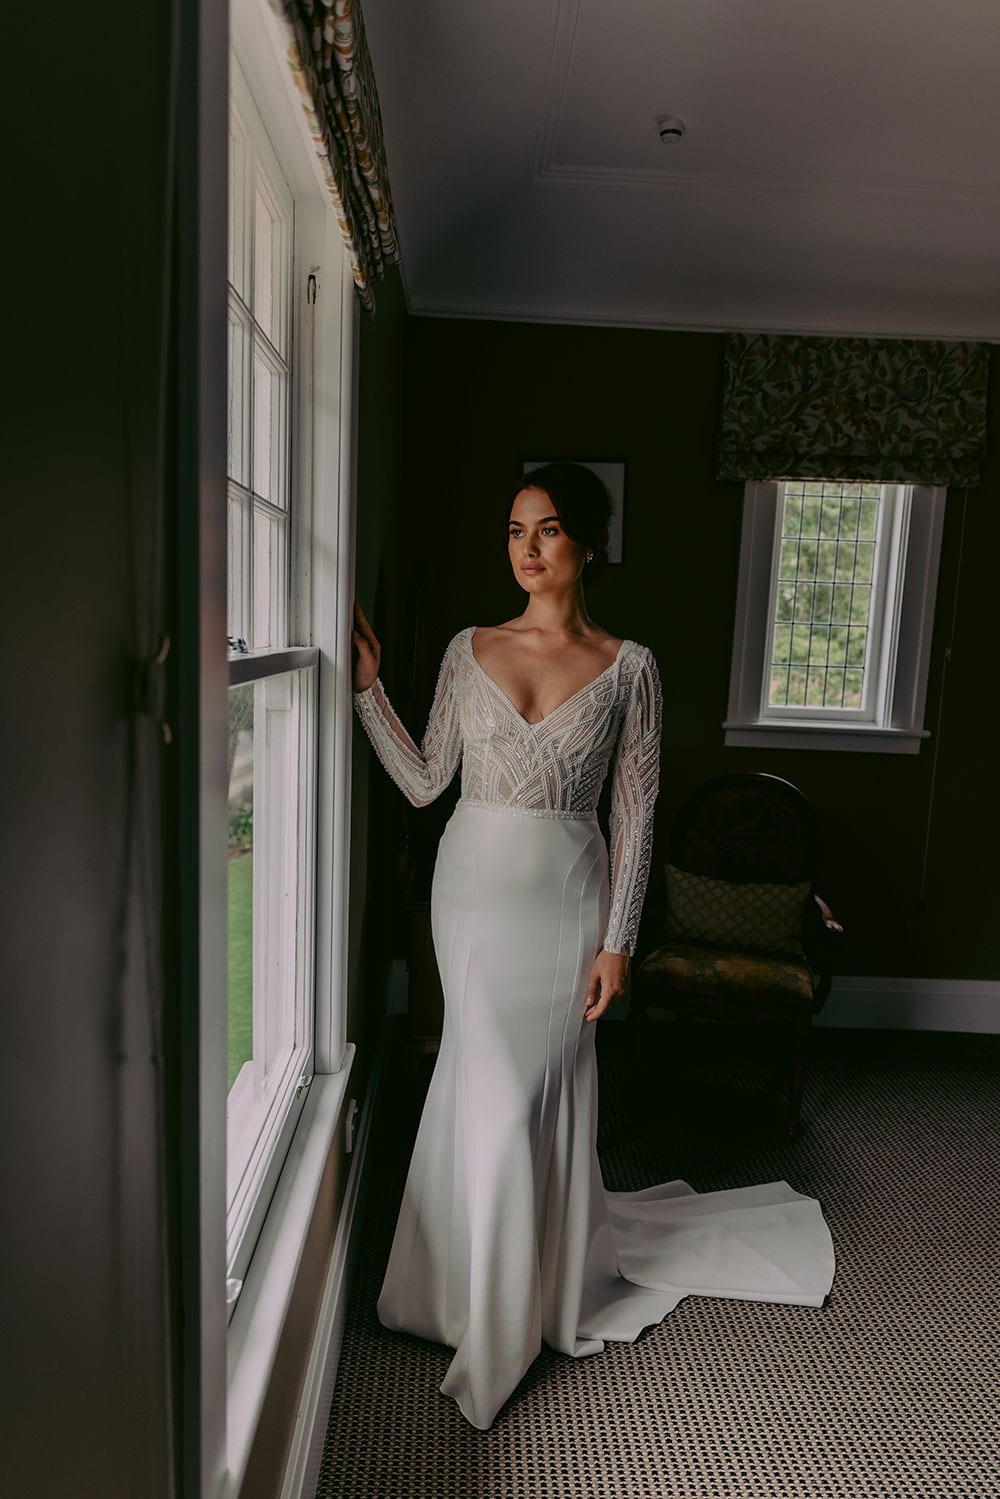 Renata Wedding gown from Vinka Design - Show stopping wedding dress with stunning beaded lace. Fitted sleeves with tiny pearl buttons and open back. Flattering lined panel skirt gently shapes the hips and sculpts into a beautiful flared train. Model wearing gown looking out of window, train flowing behind.